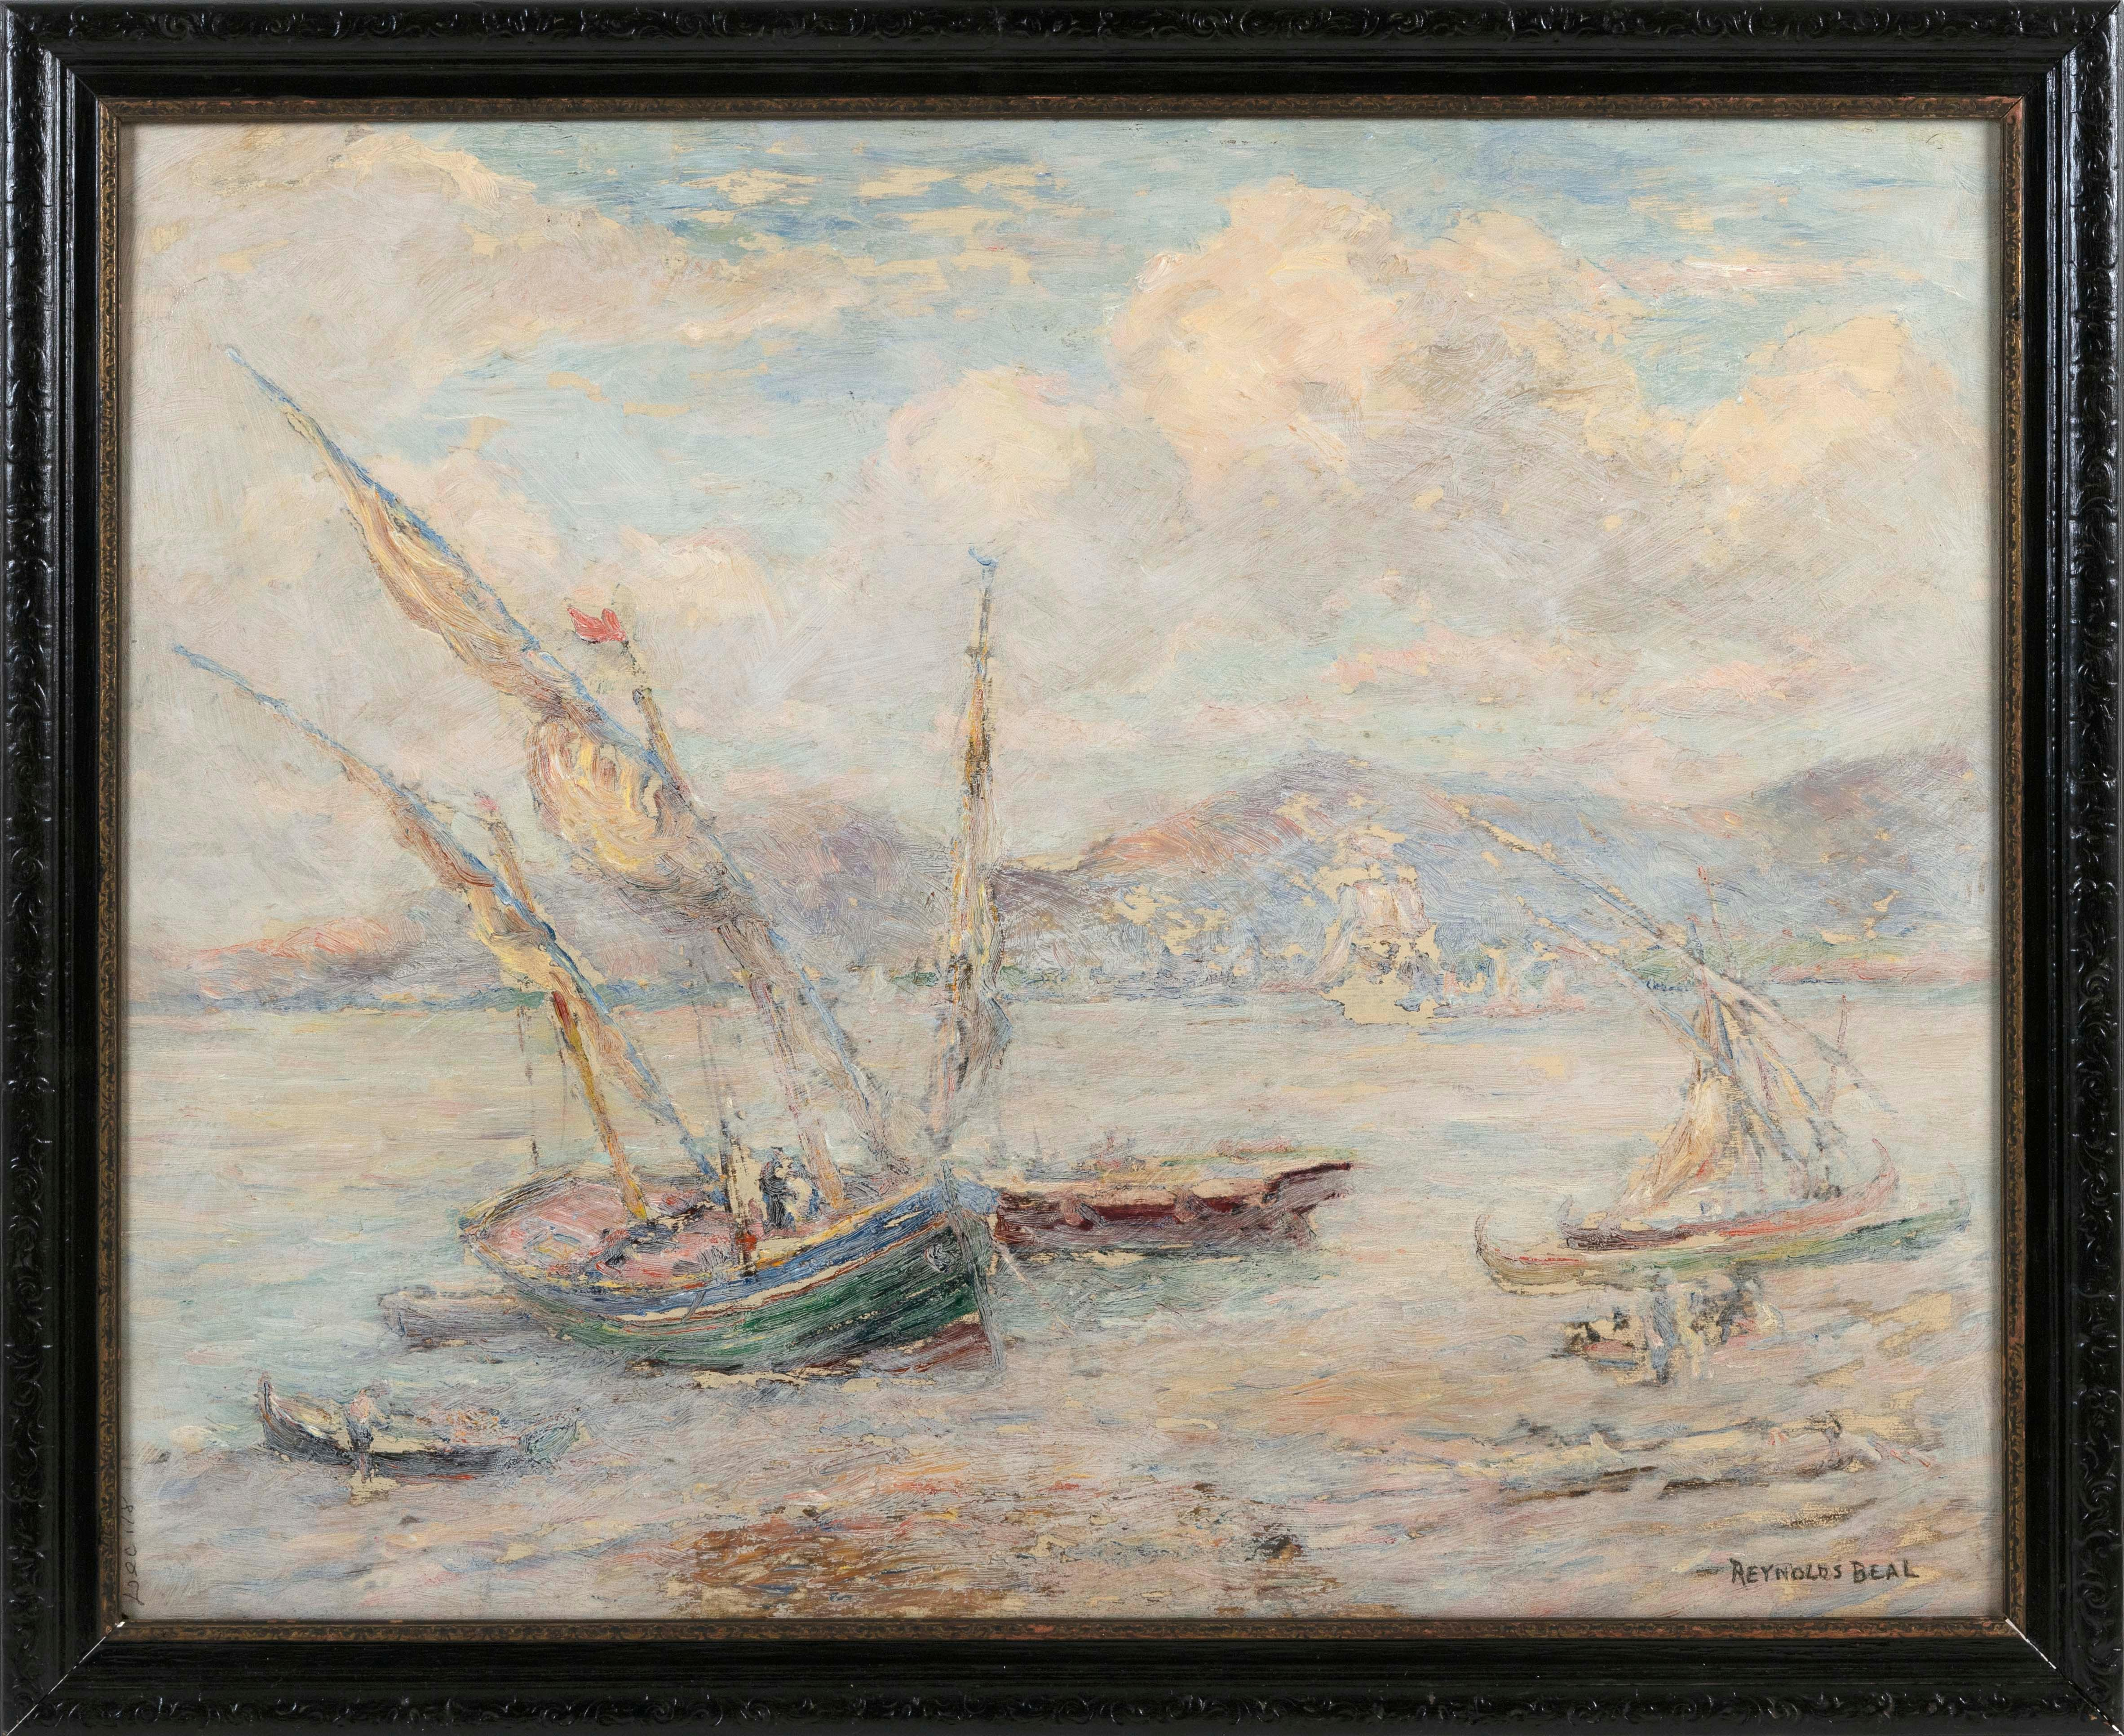 "REYNOLDS BEAL, Massachusetts/Rhone Island, 1866/67-1951, Fishing boats in a harbor., Oil on board, 24"" x 30"". Framed 28"" x 33.5""."